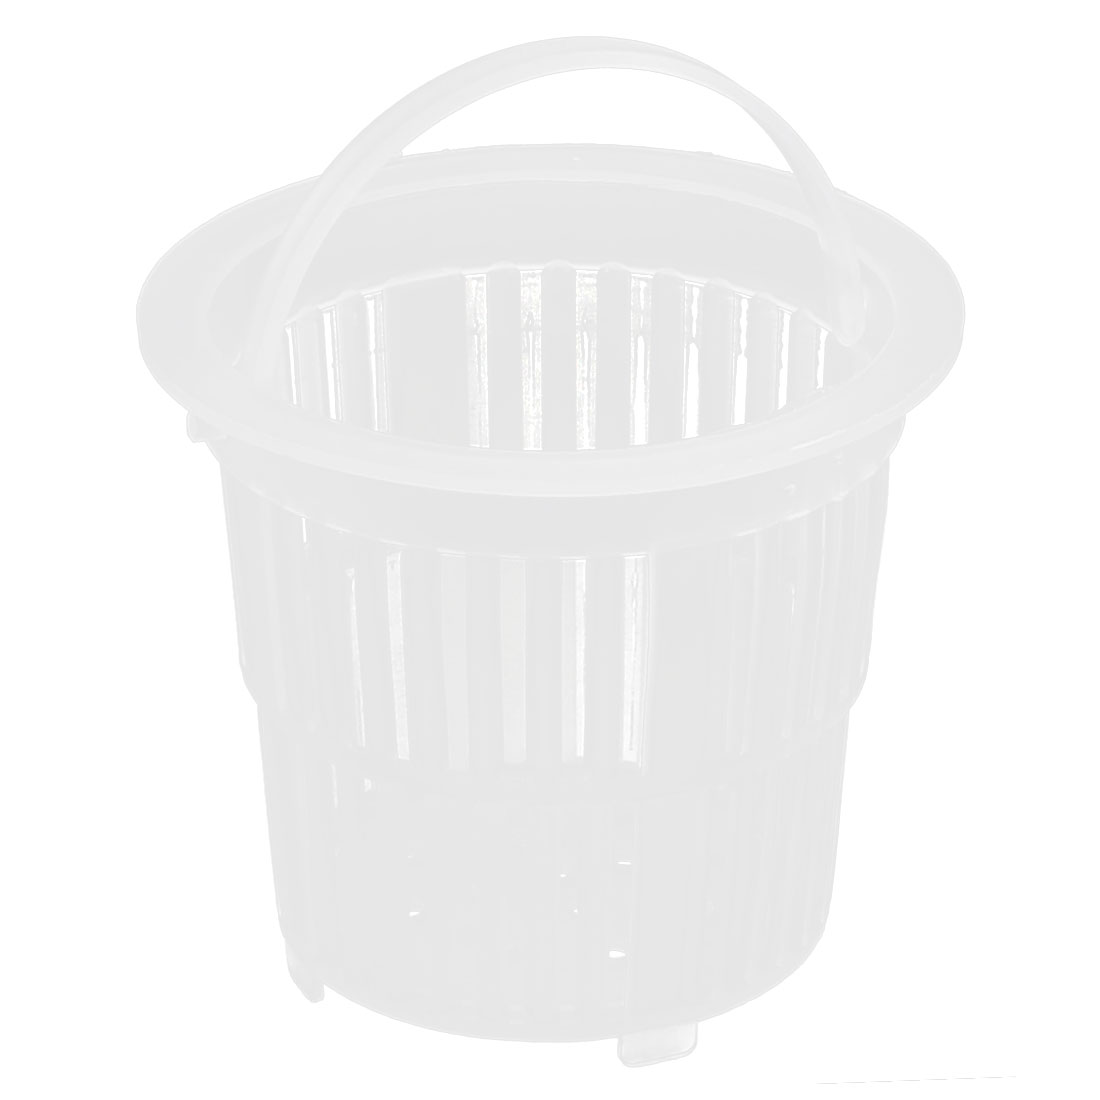 Sink Basin Plastic Drainer Strainer Waste Stopper Filter Basket Off White